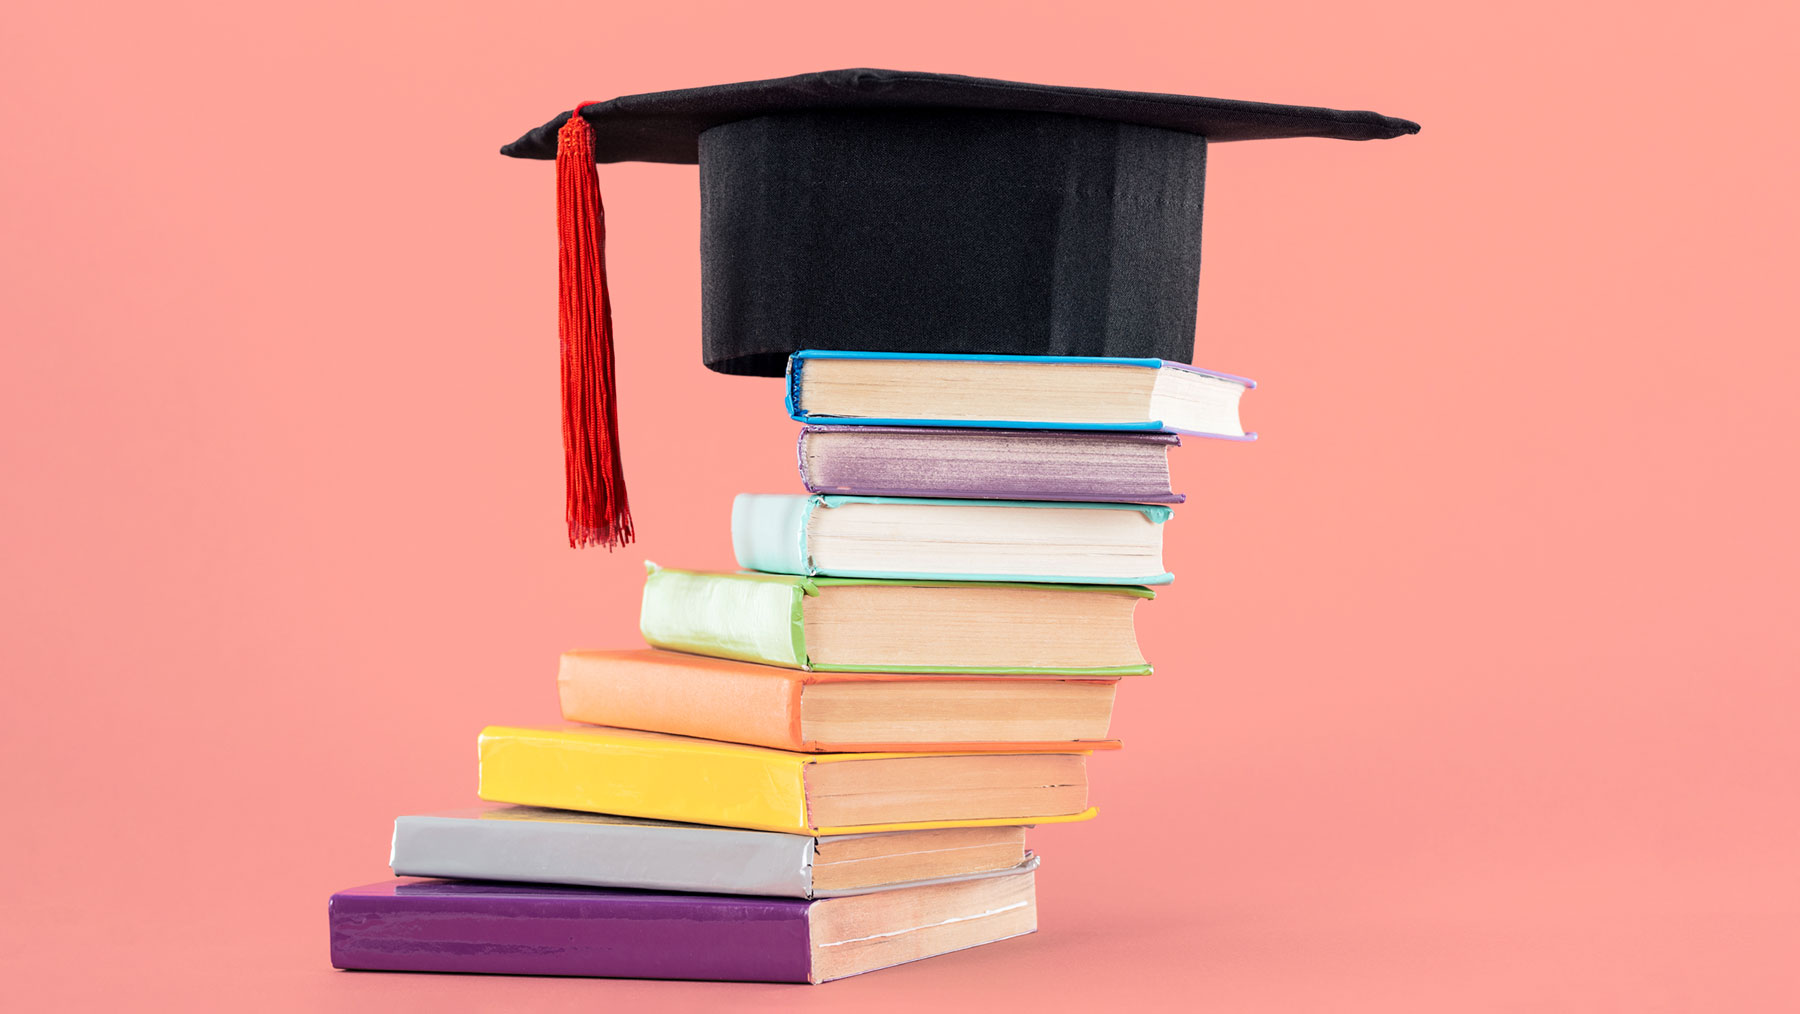 Graduation books: Best inspiring book ideas for high school and college graduates